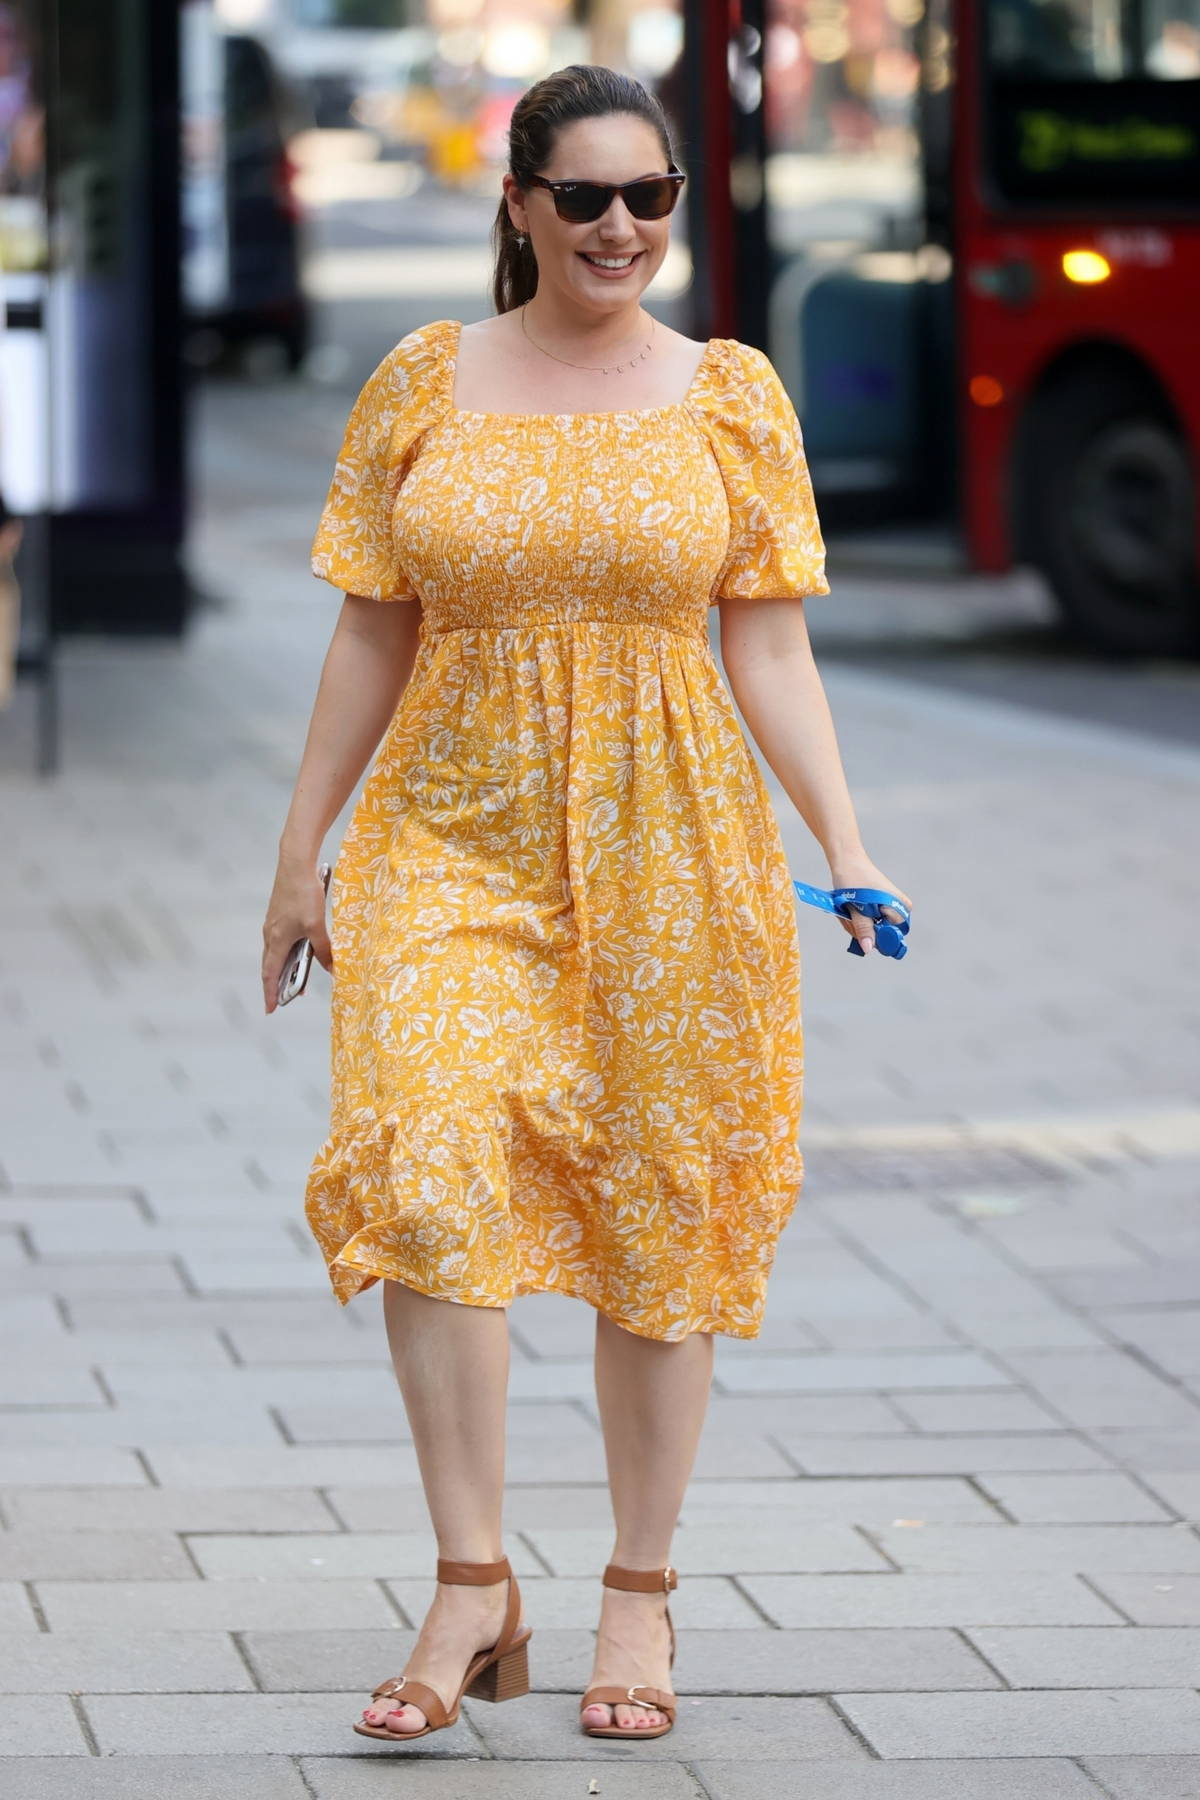 Kelly Brook looks radiant in a yellow summer dress as she arrives at Heart radio in London, UK